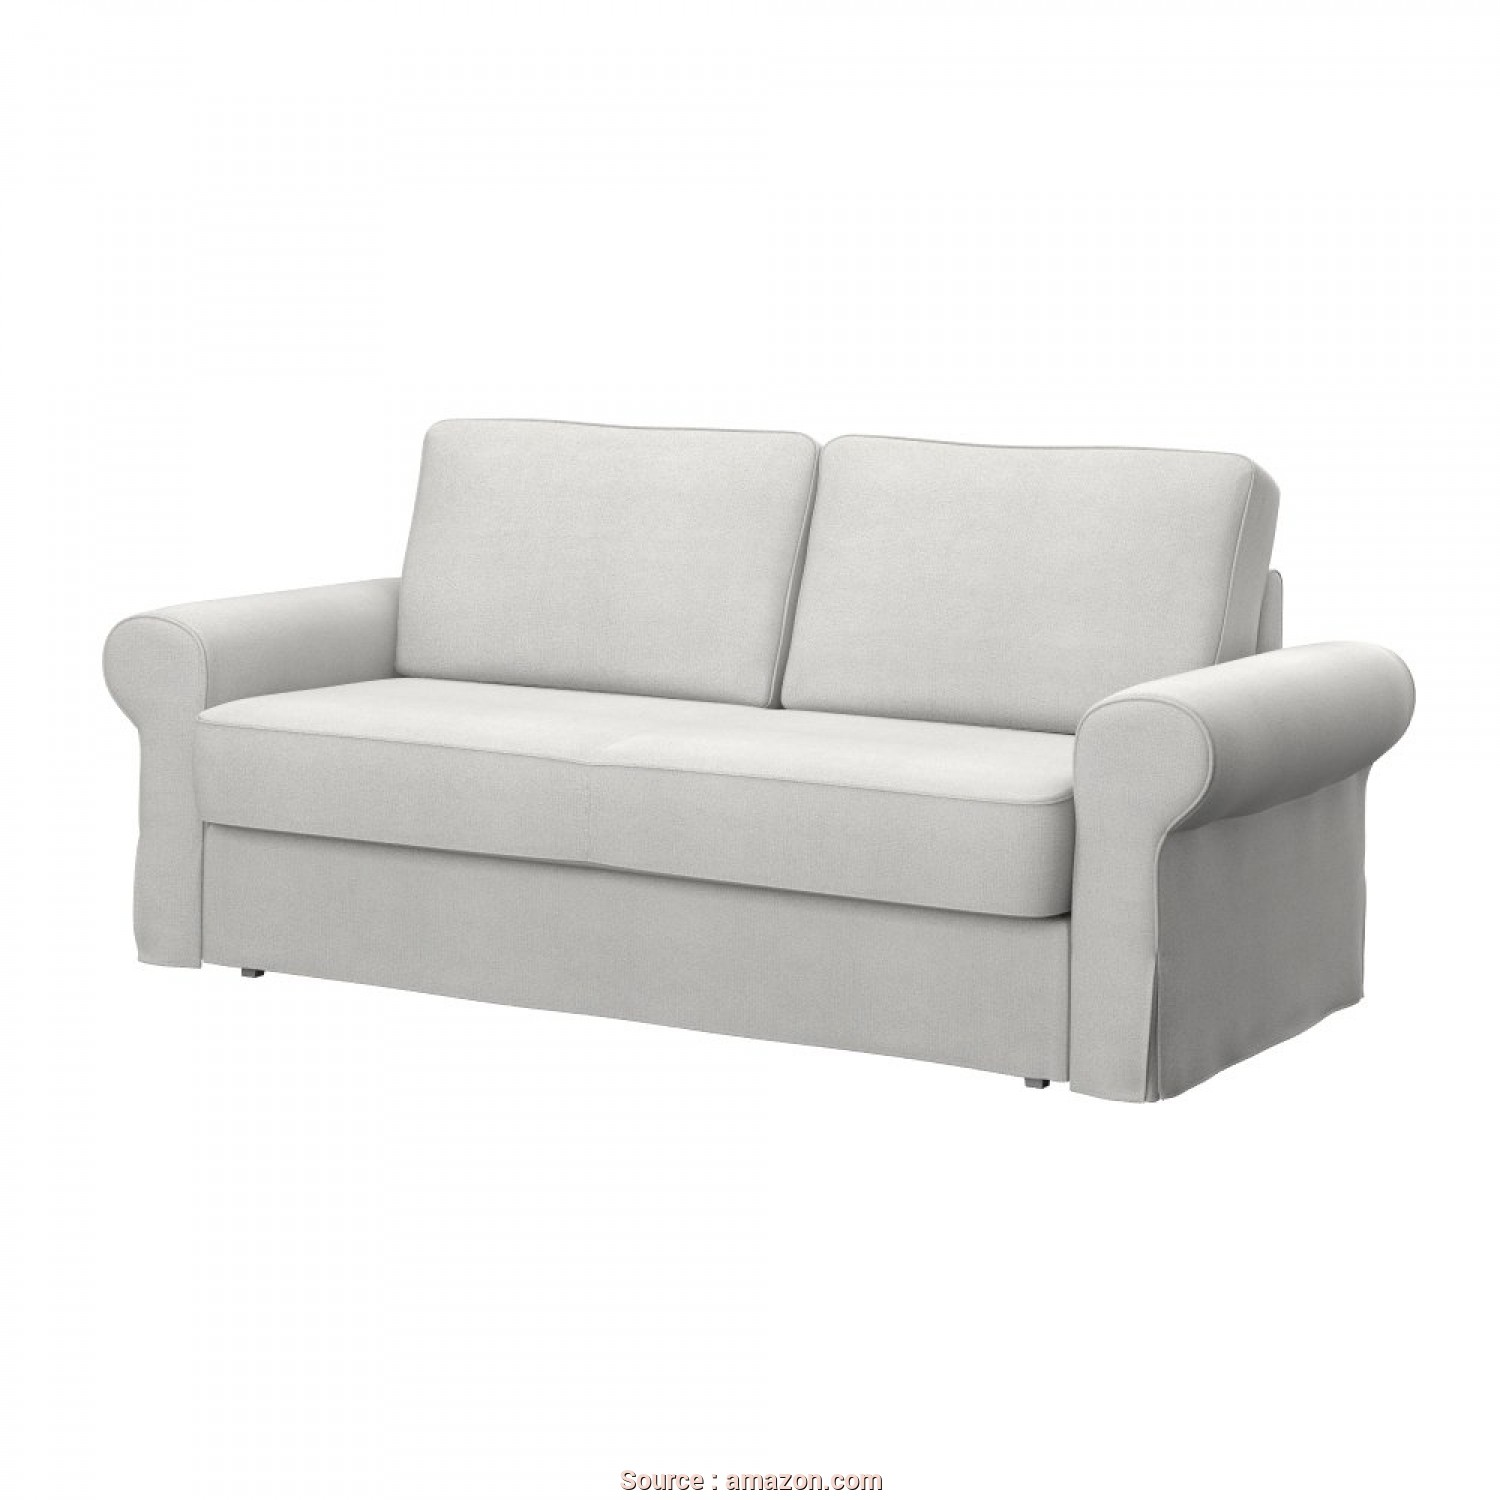 Sbalorditivo 5 Ikea Backabro Bettsofa